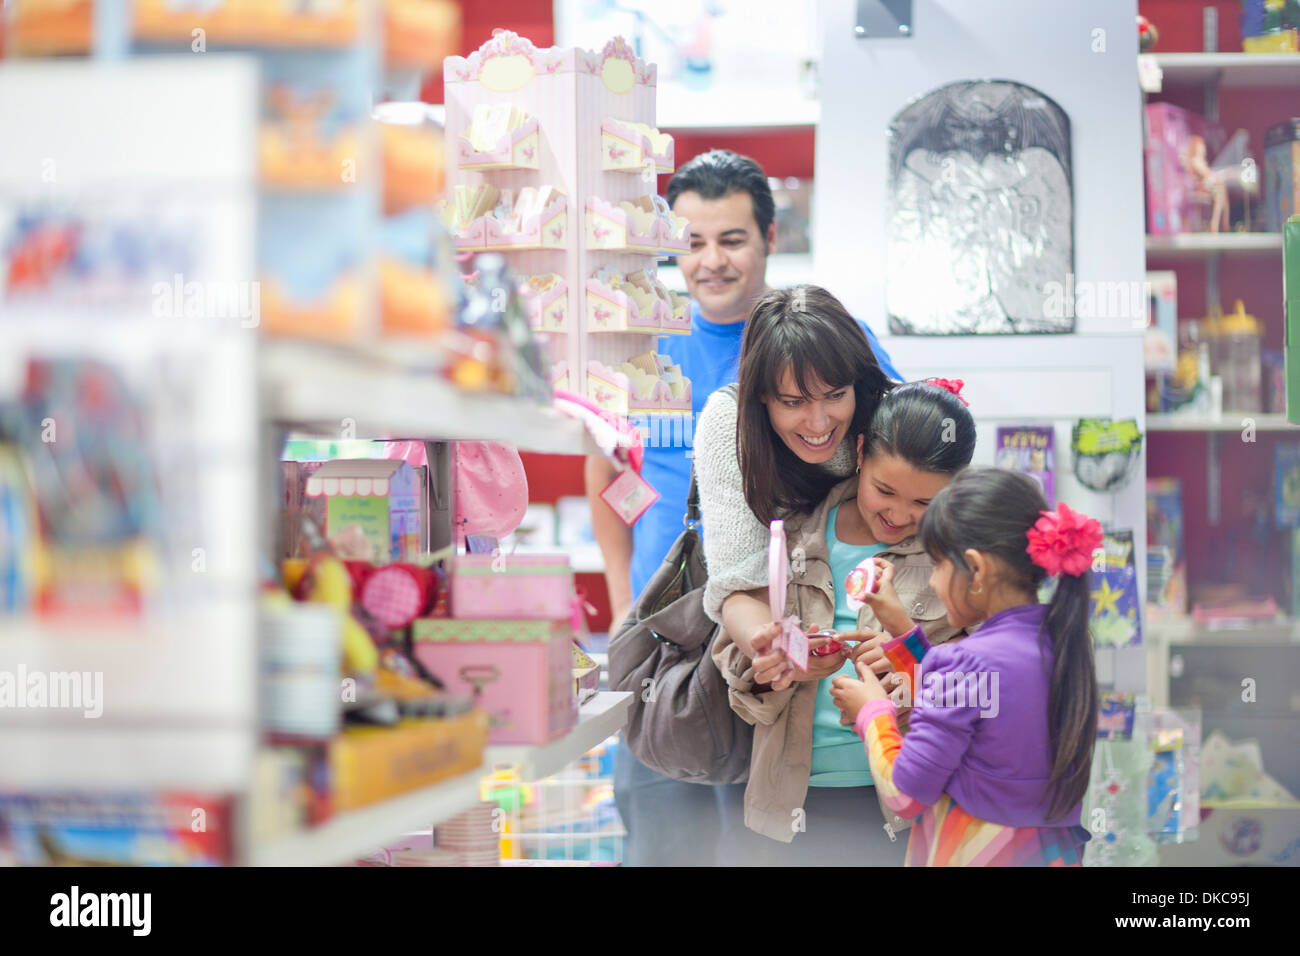 Family with two daughters shopping in toy shop - Stock Image